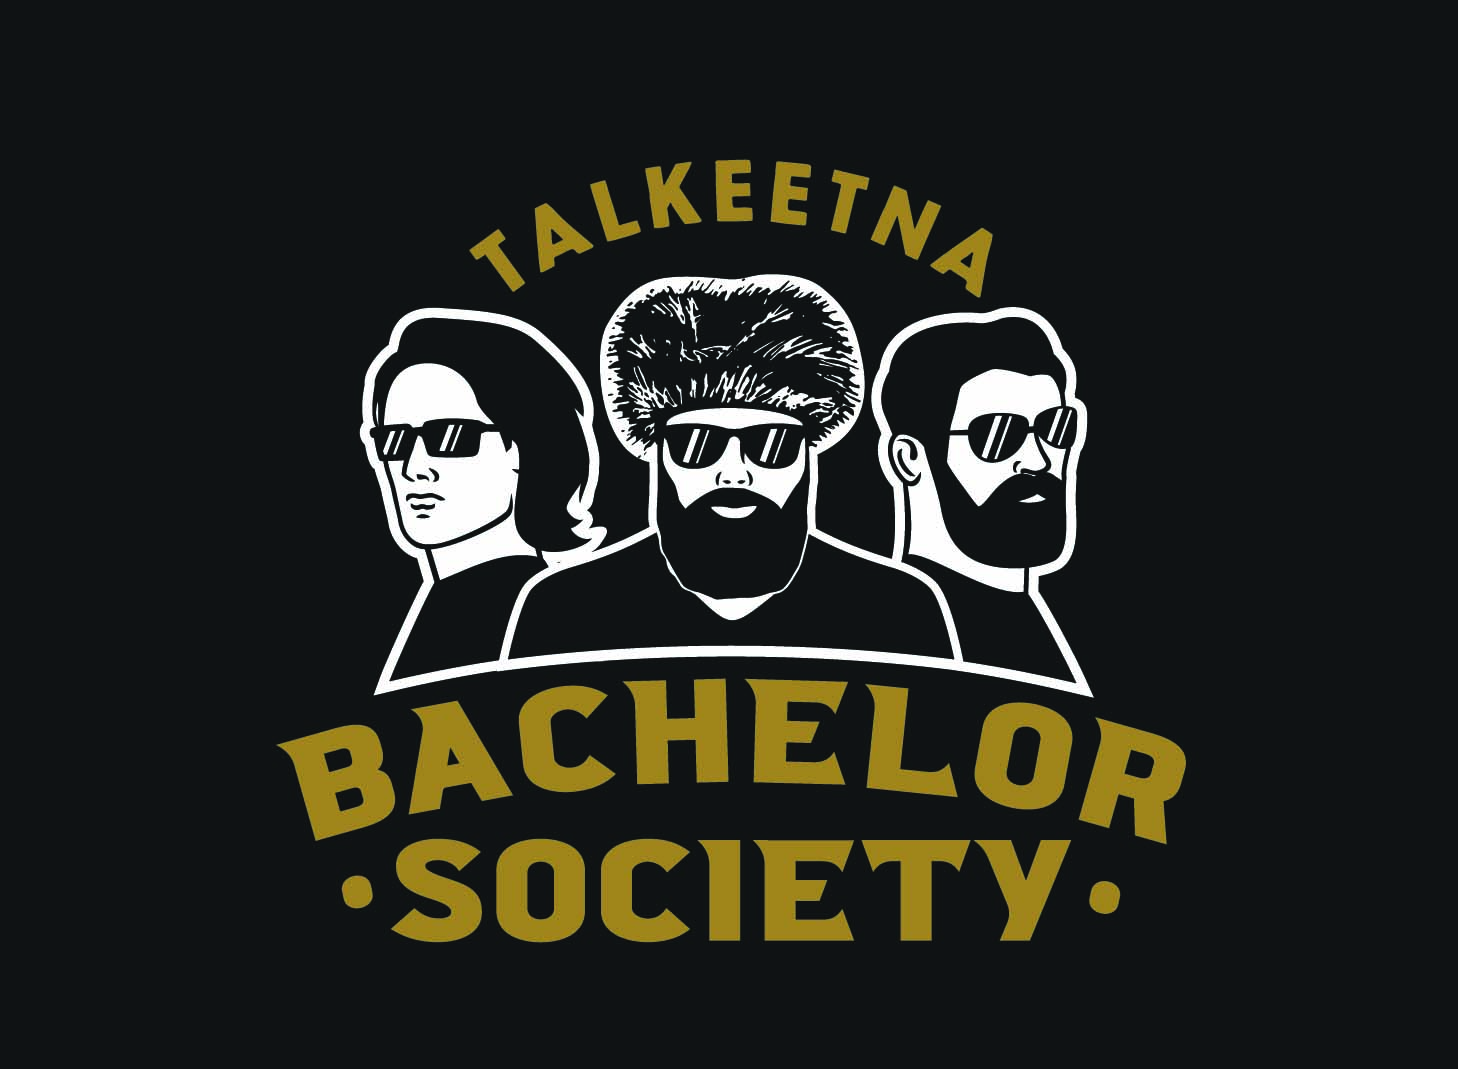 Talkeetna Bachelor Society